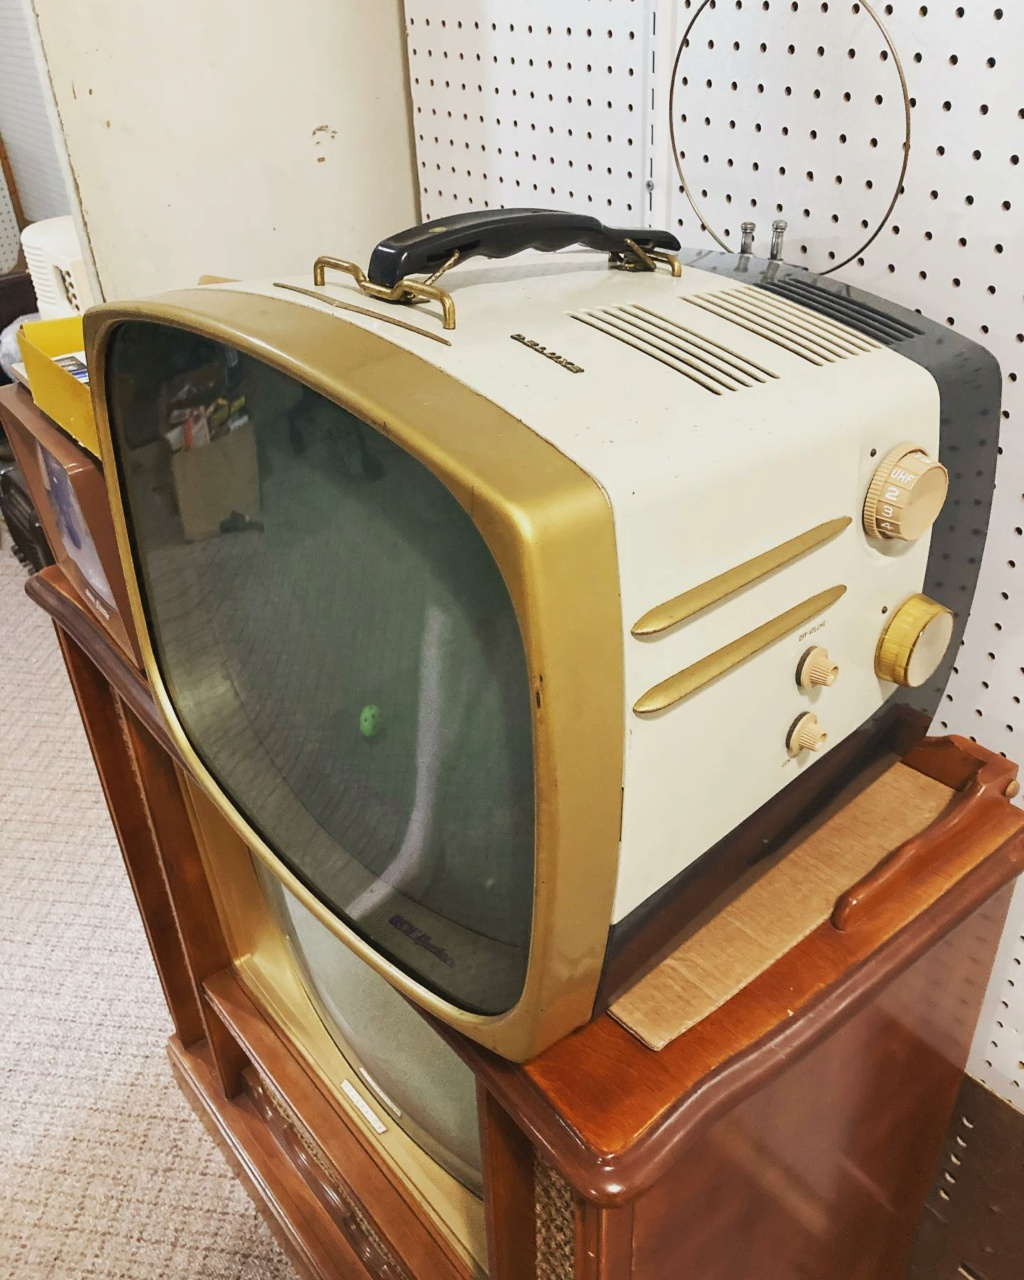 Téloches.... Vintage televisions - 1940s 1950s and 1960s tv - Page 4 17233110